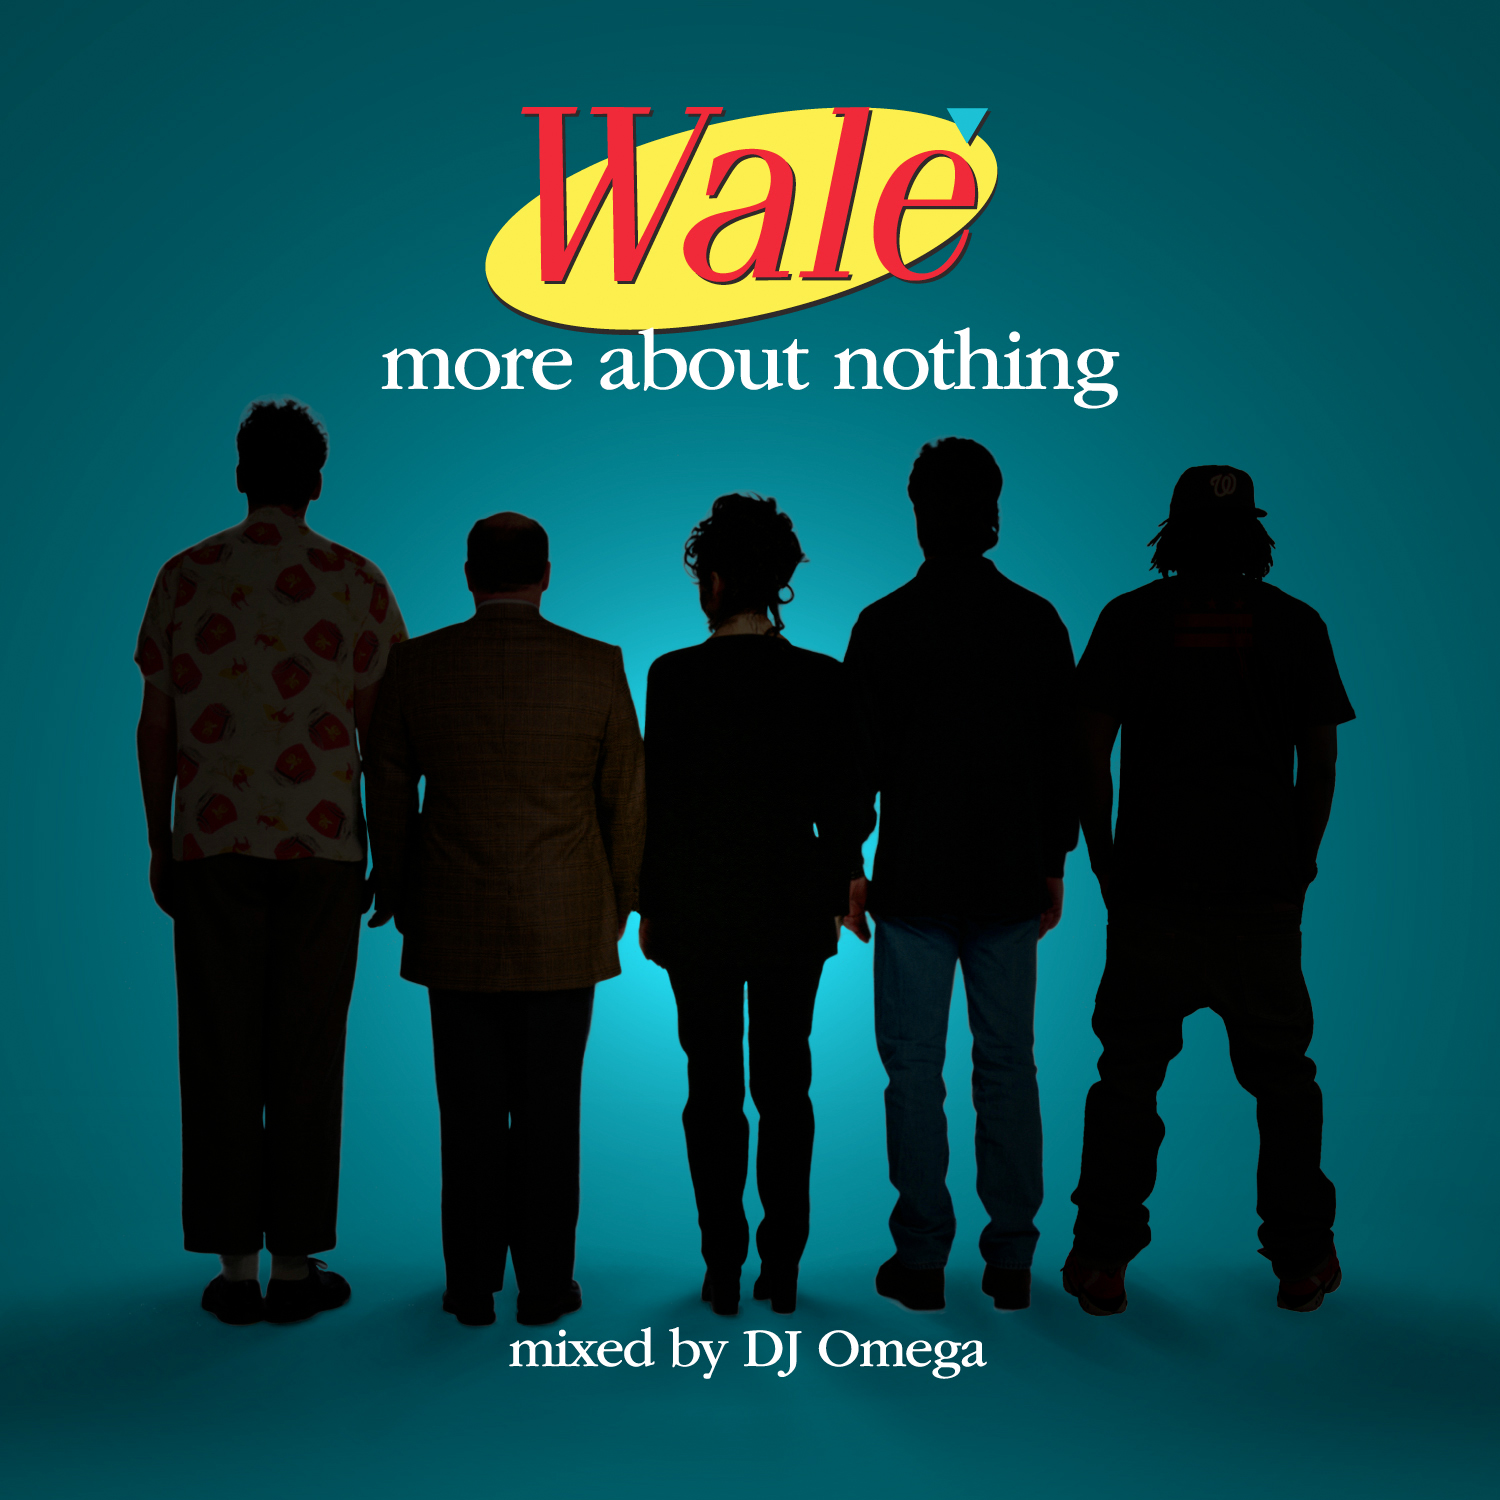 Wale Recruits Jerry Seinfeld For Album About Nothing